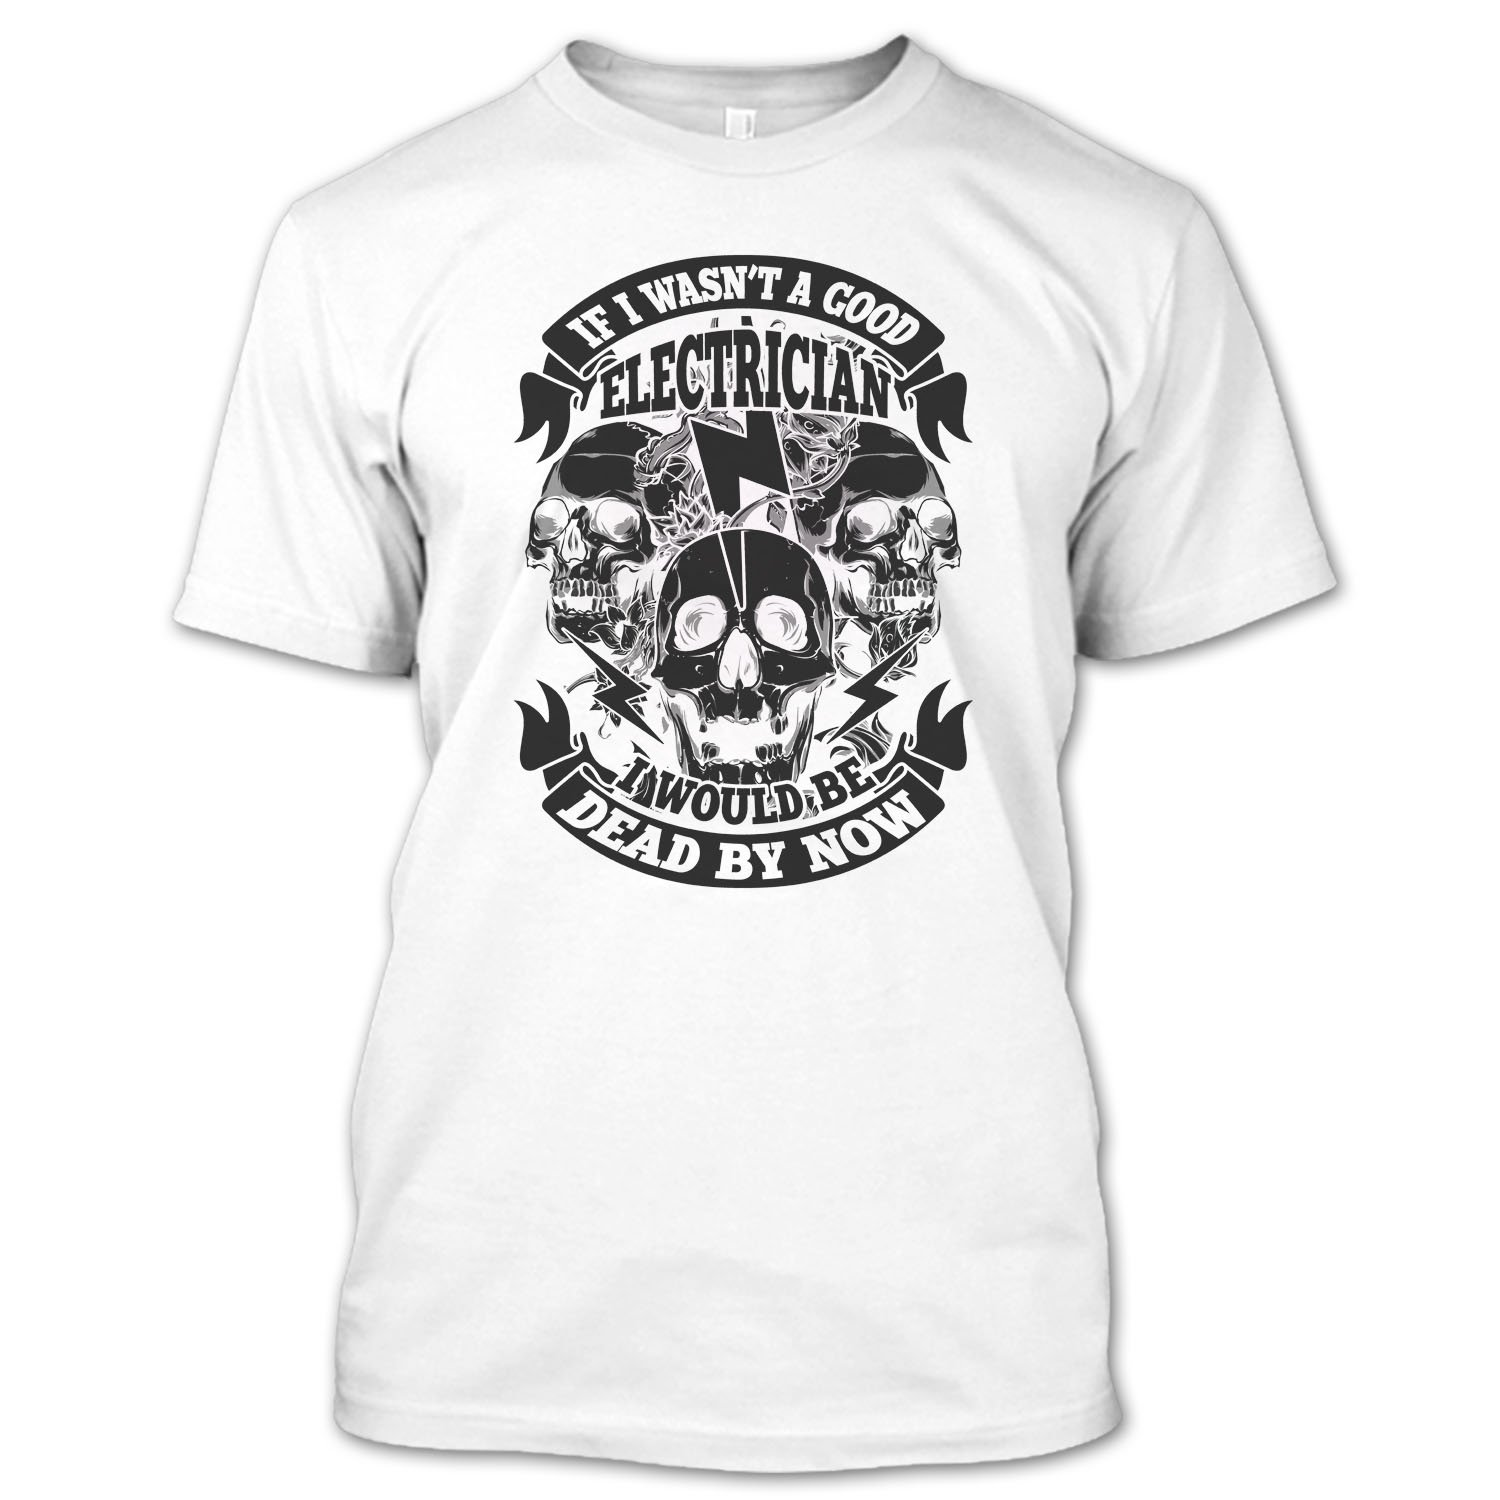 Ilctee A Good Electrican T Shirt Coolest Electrican T Shirt